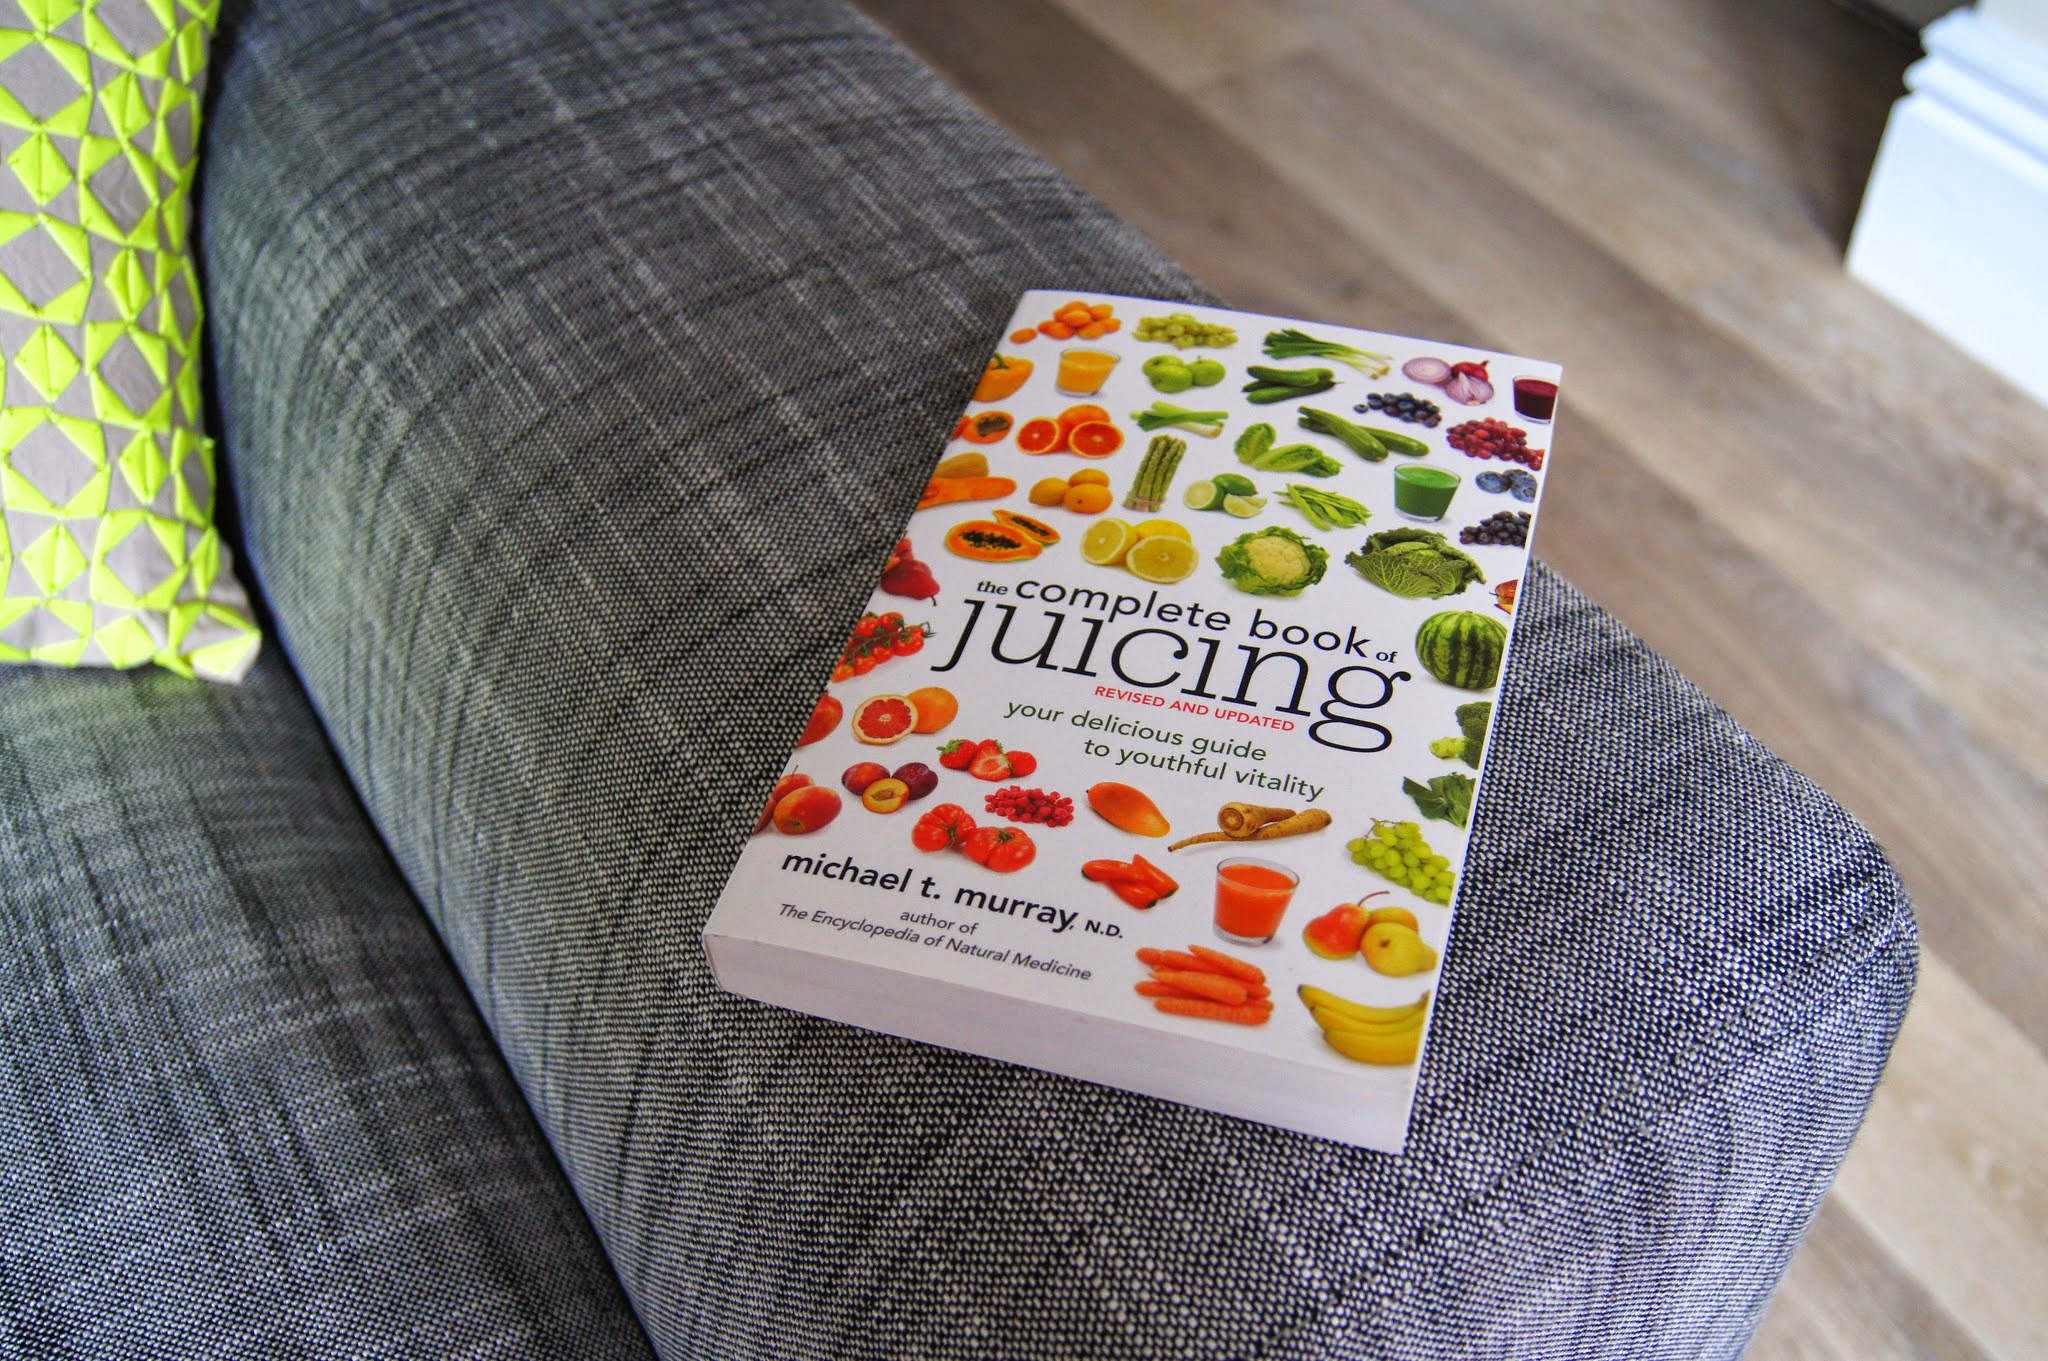 the complete guide book of juicing michael t murray review